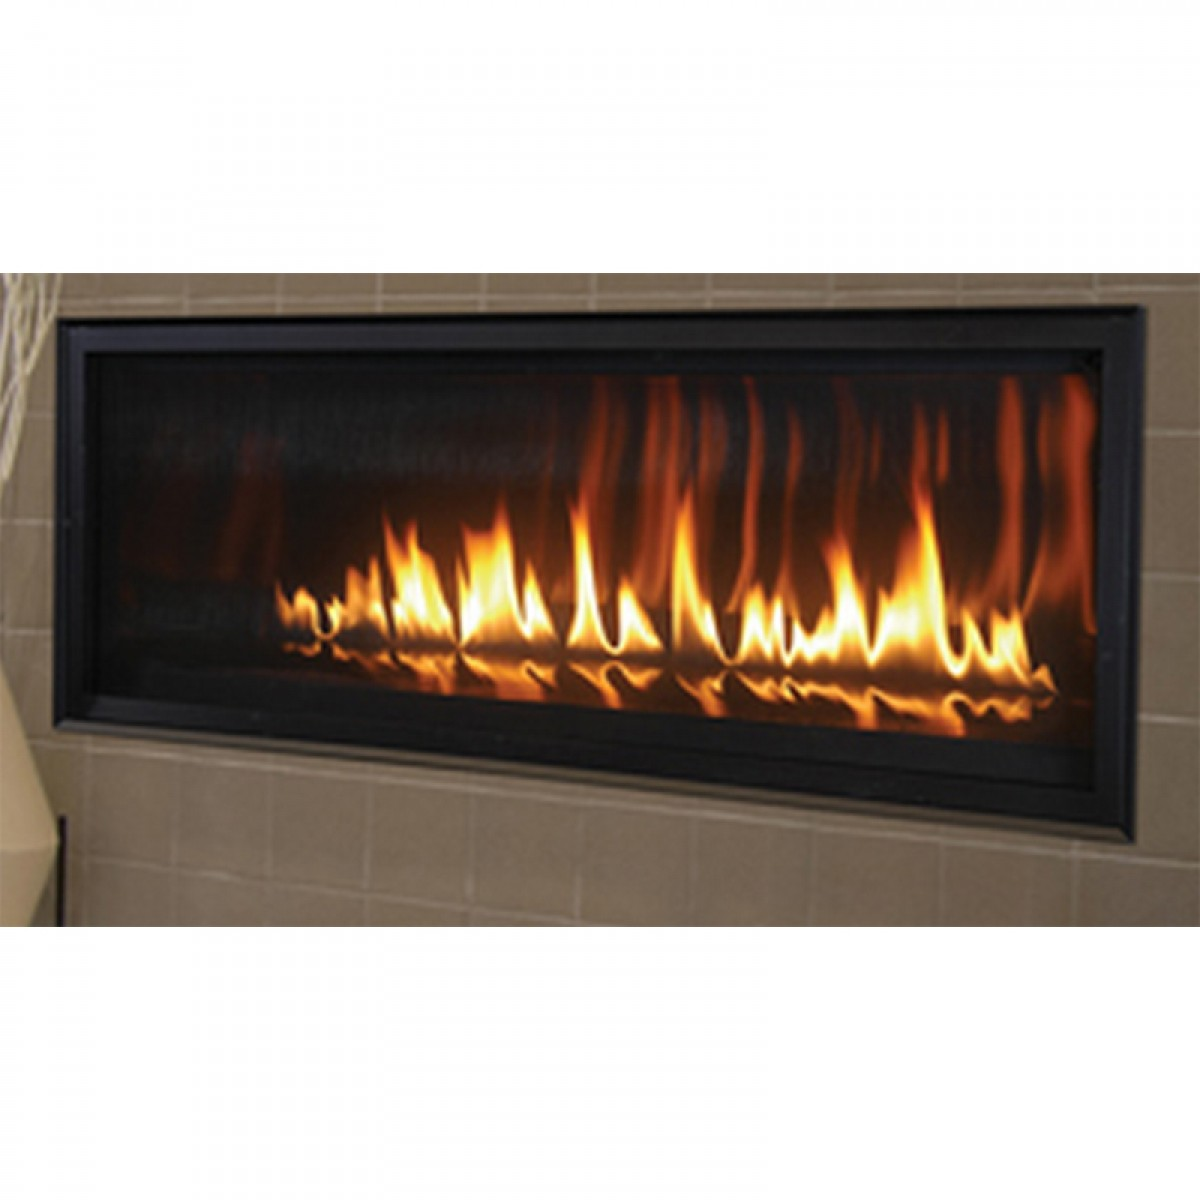 Vent Free Linear Fireplace Natural Gas